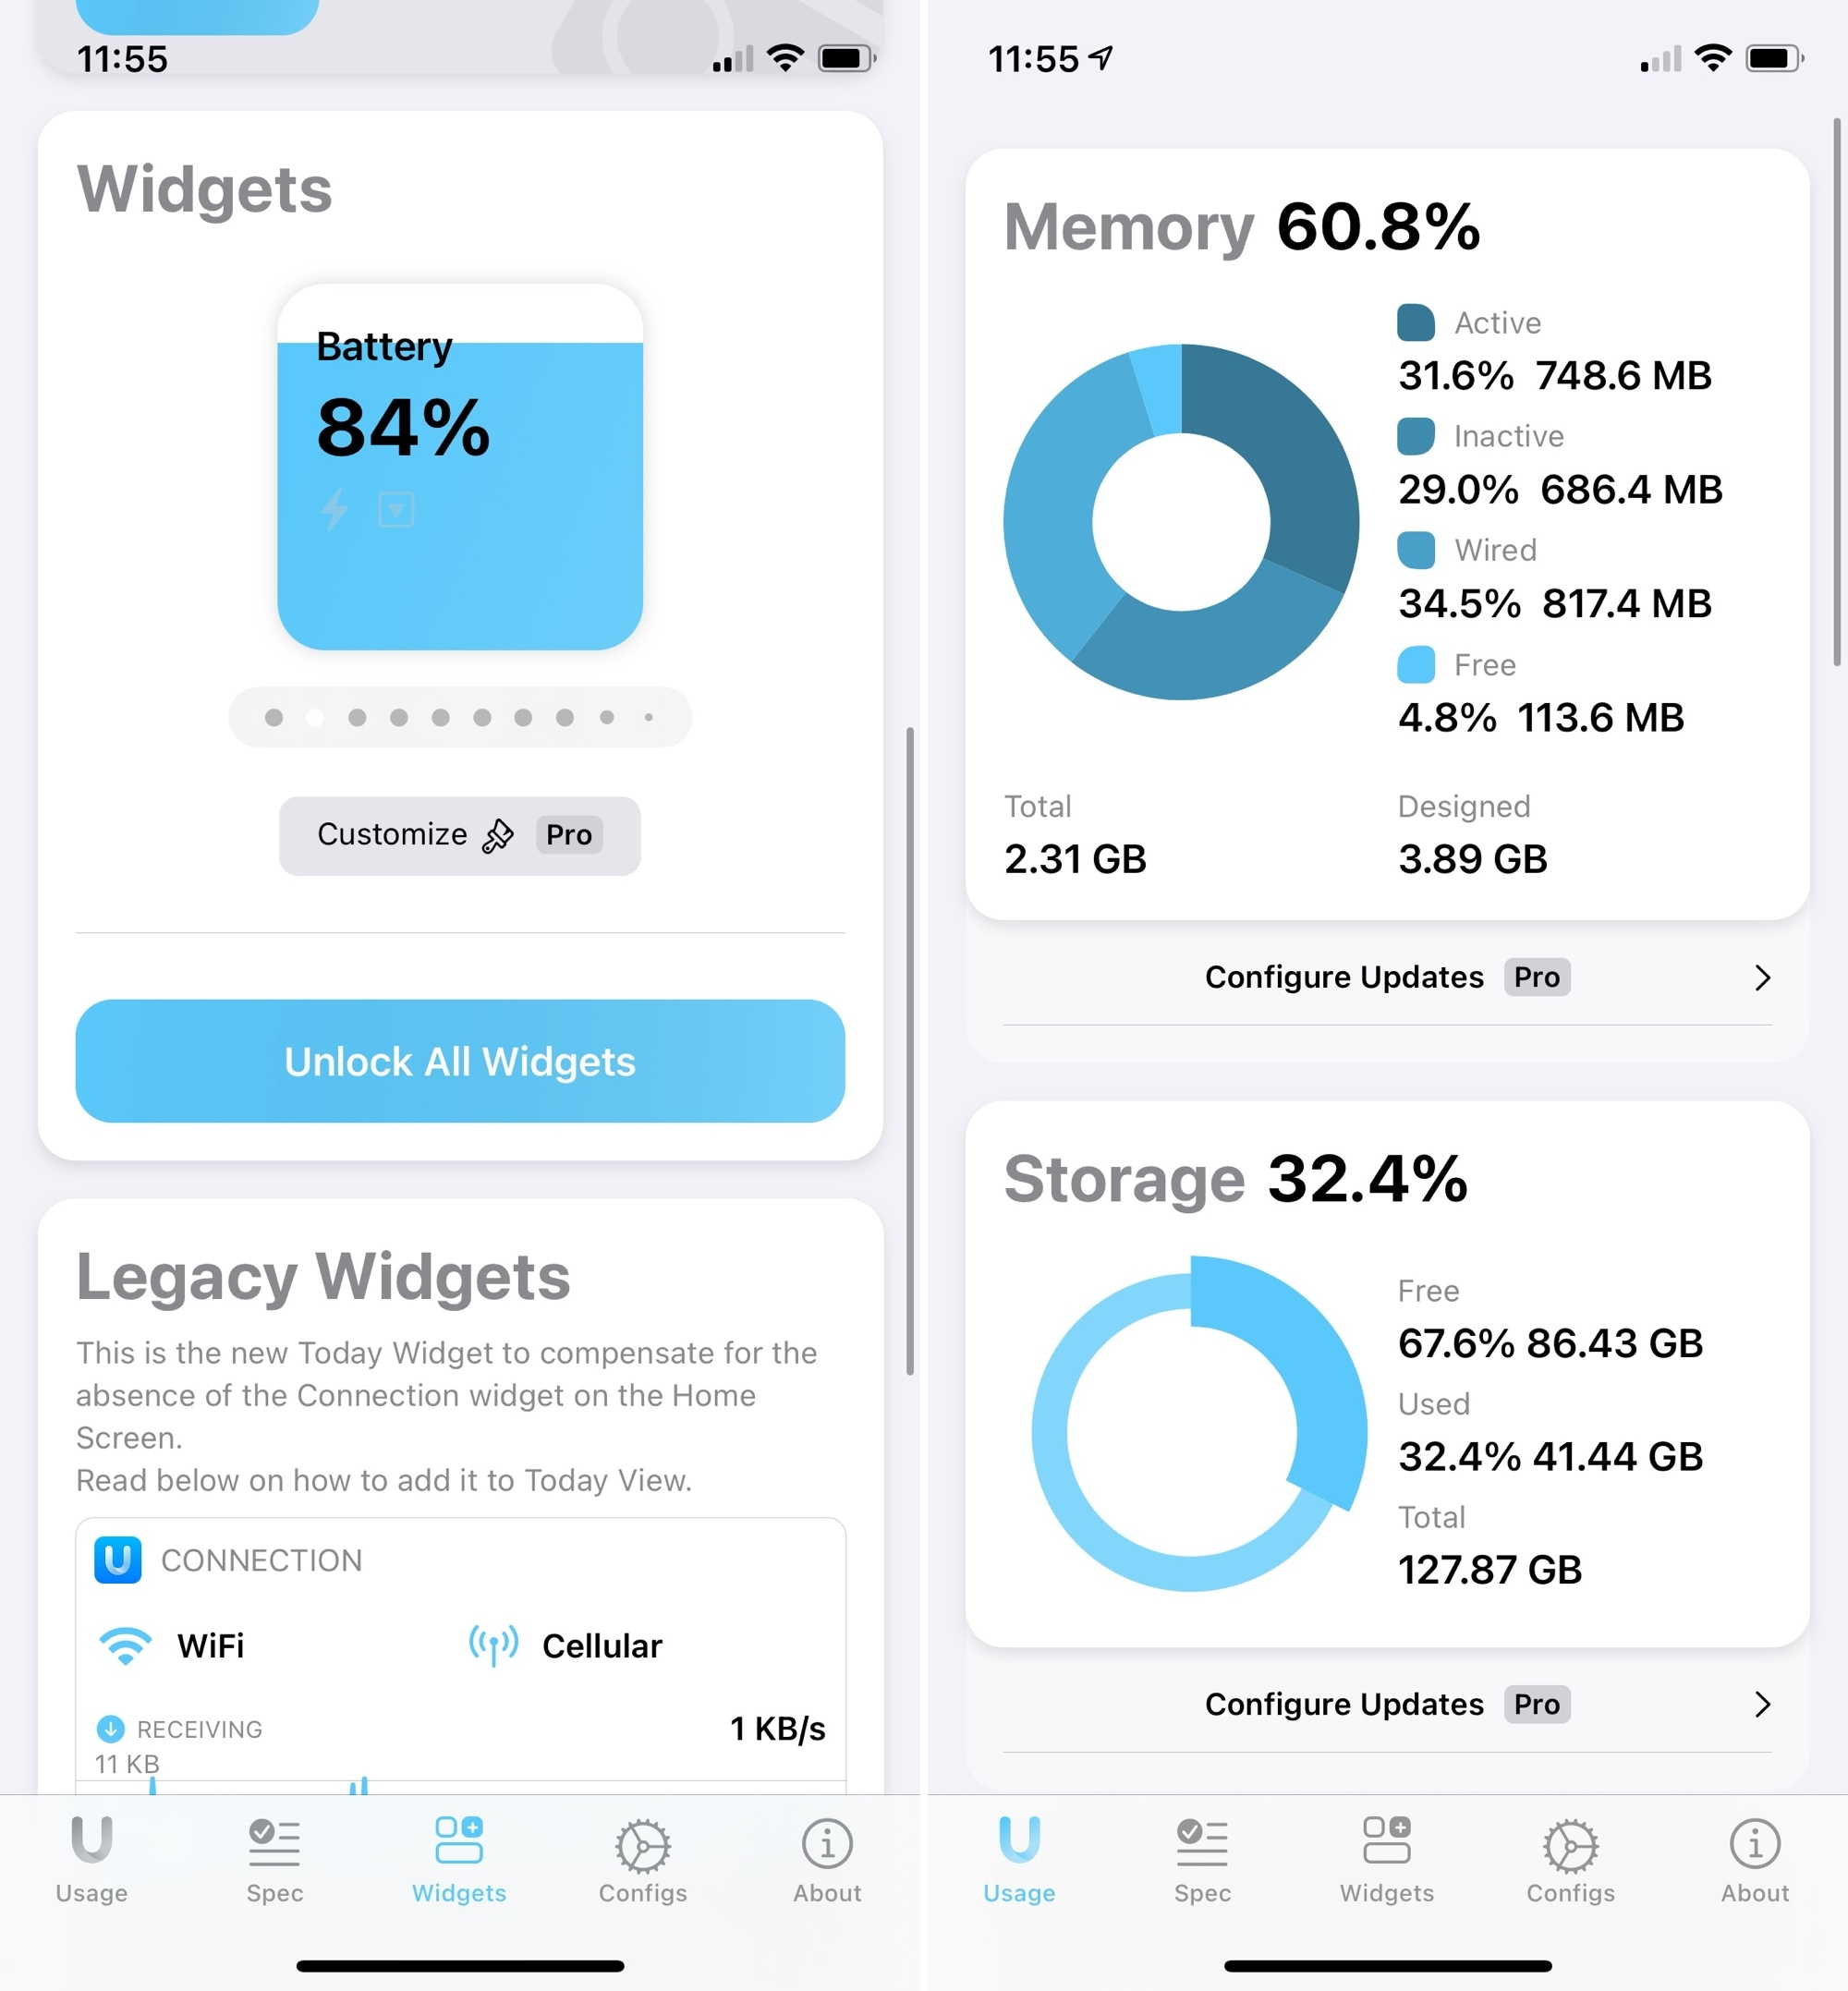 Usage Widgets for iPhone